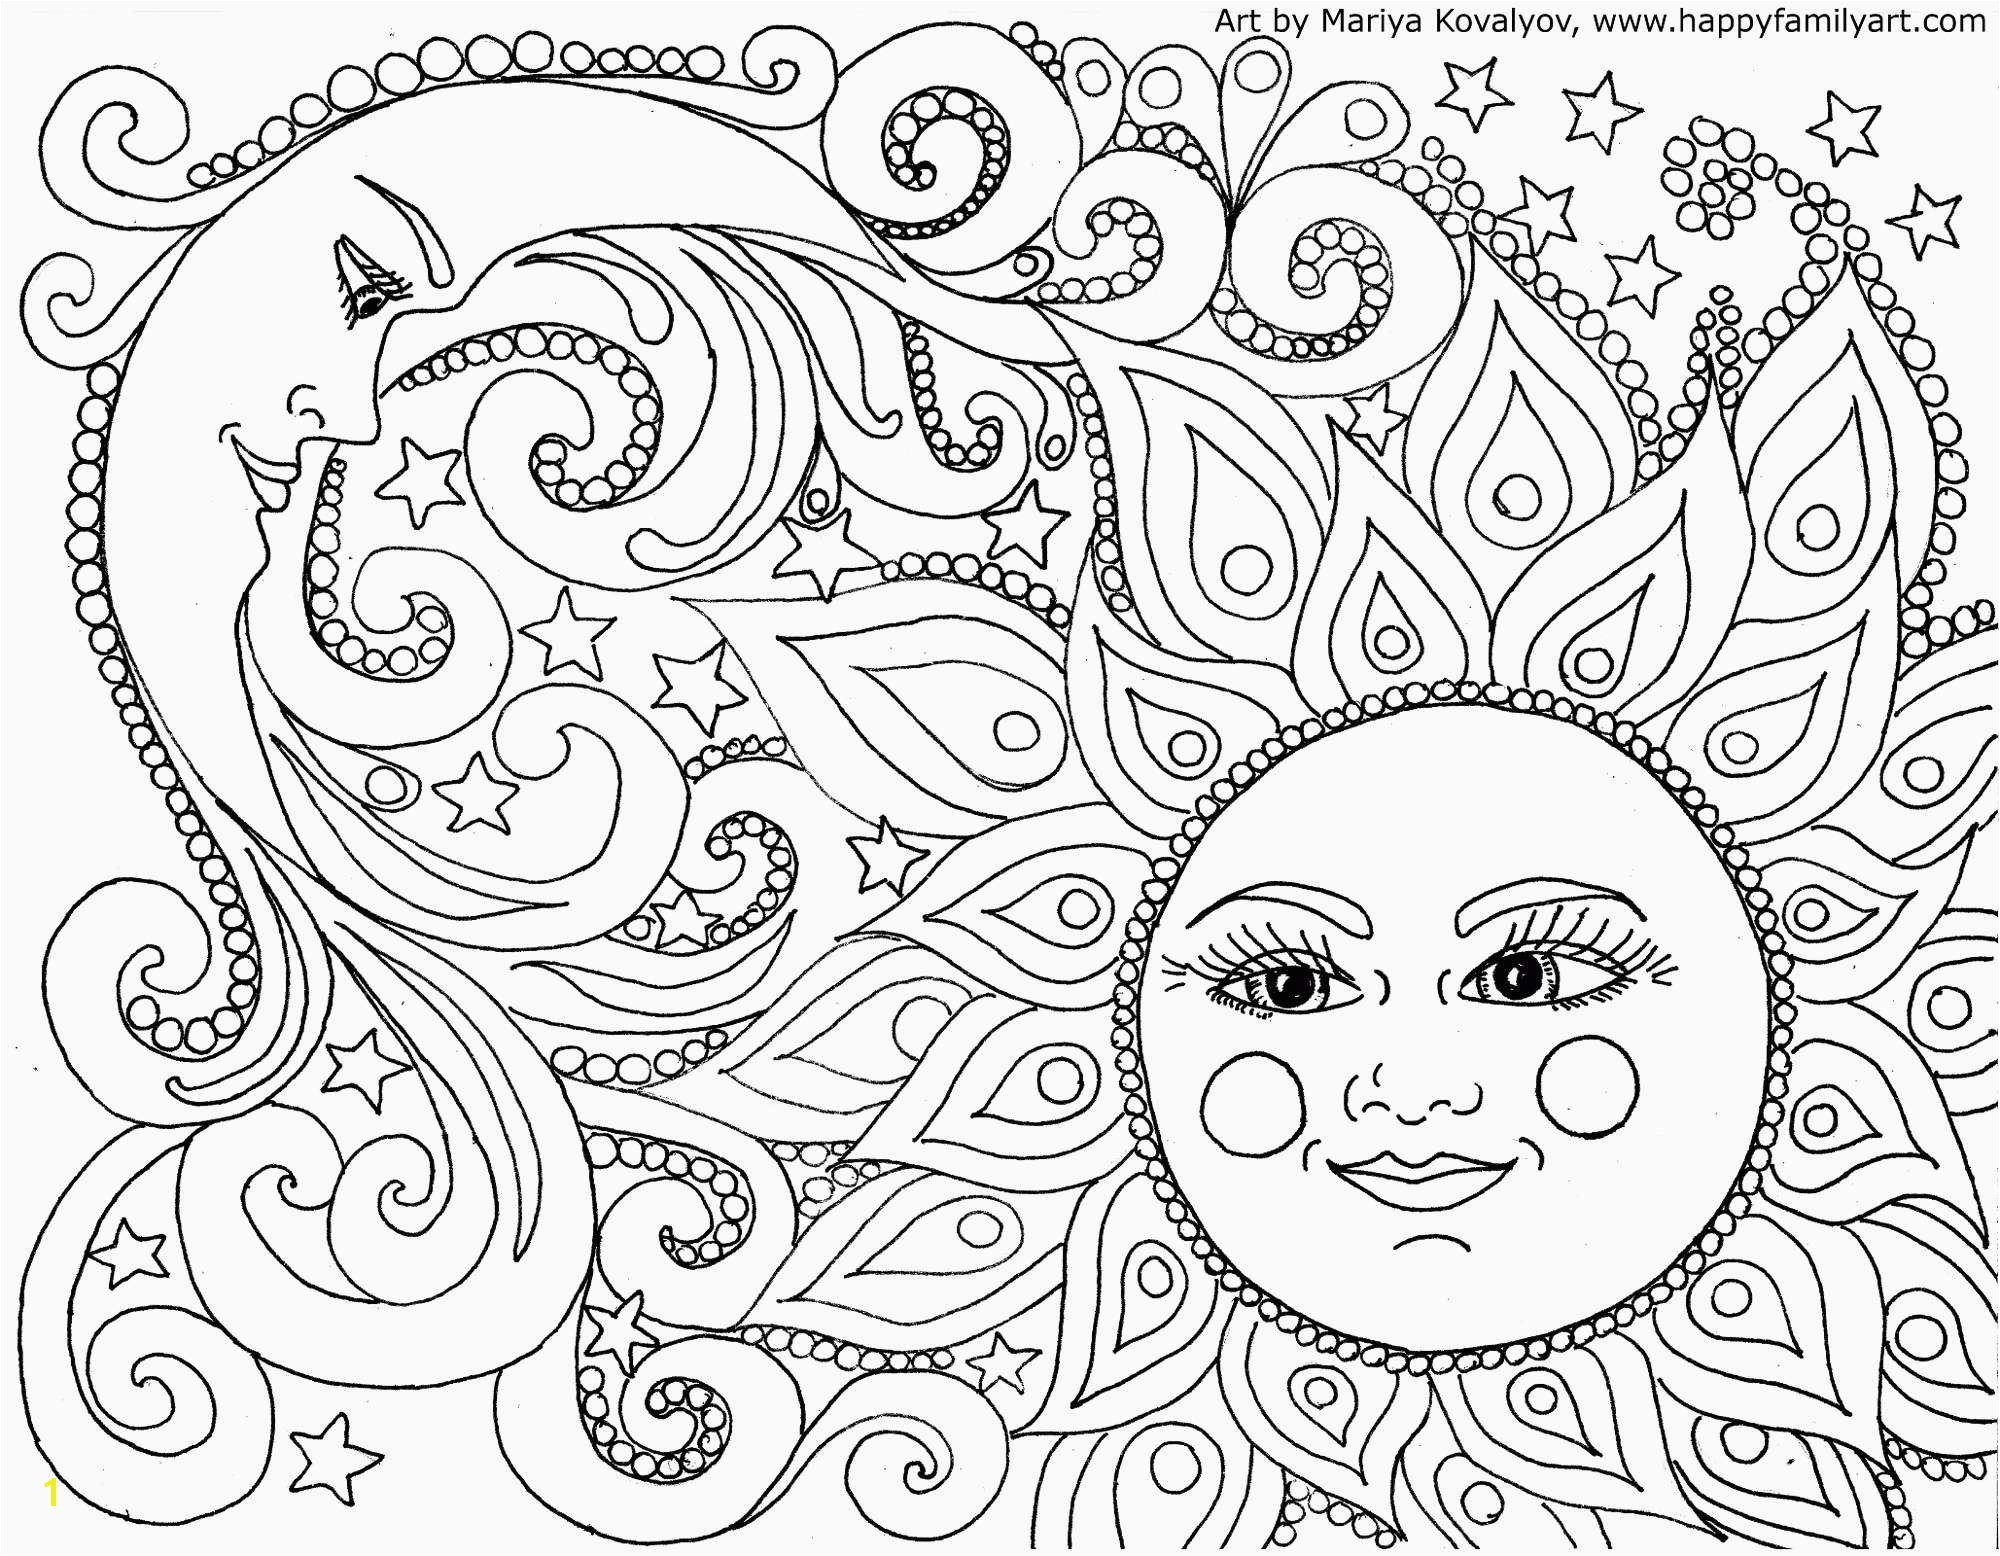 Coloring Pages for Christmas Time Elegant Christmas Coloring In Pages Free Cool Coloring Printables 0d – Fun